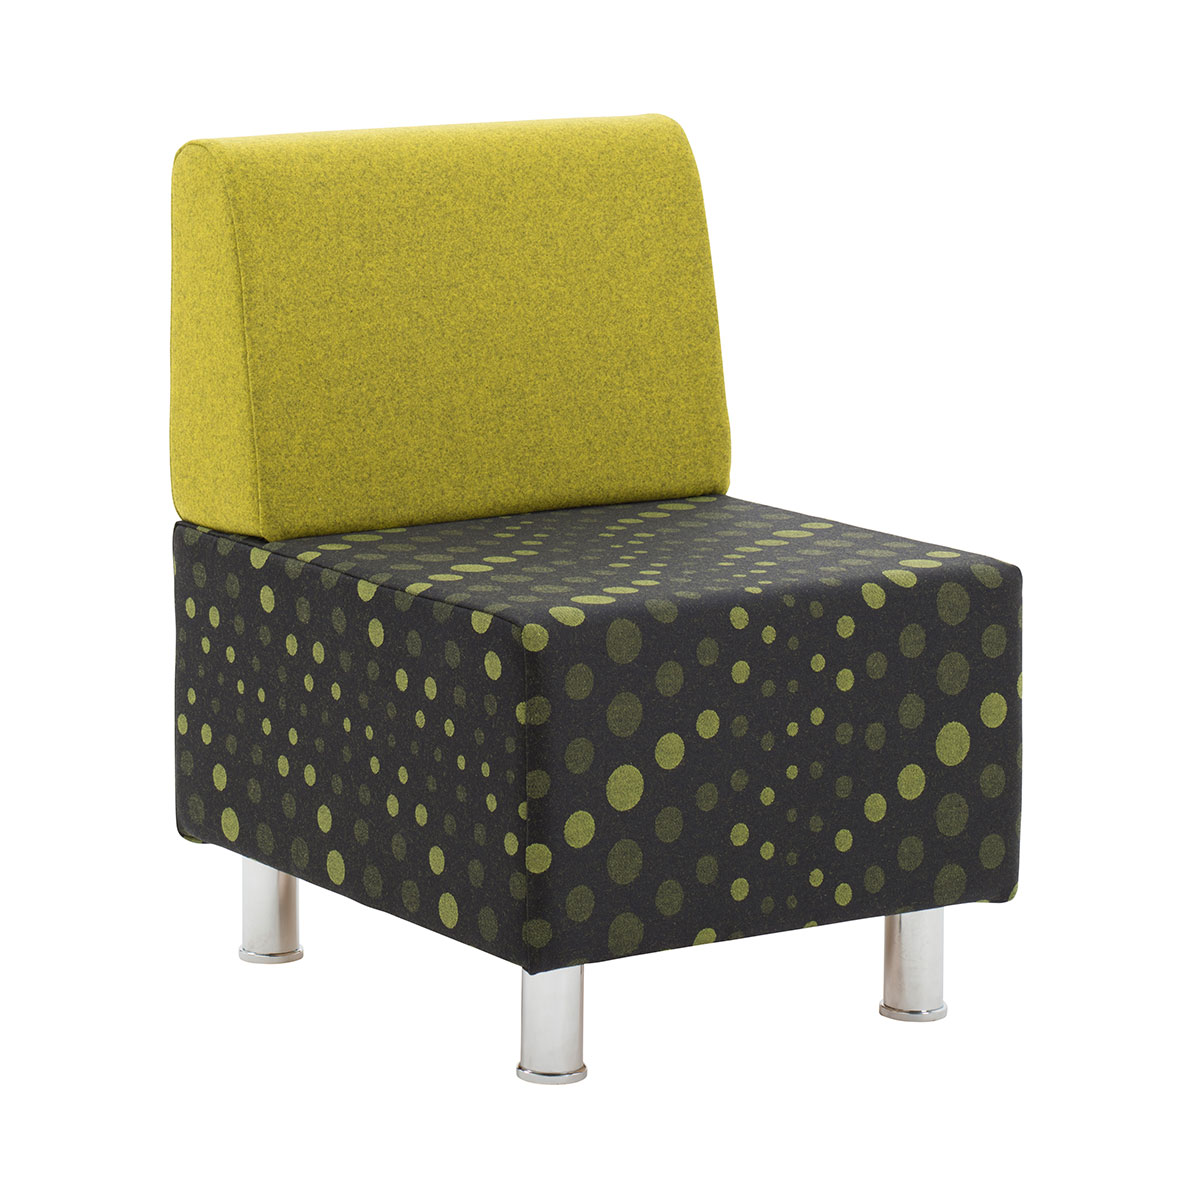 Albion Argyll Soft Seating